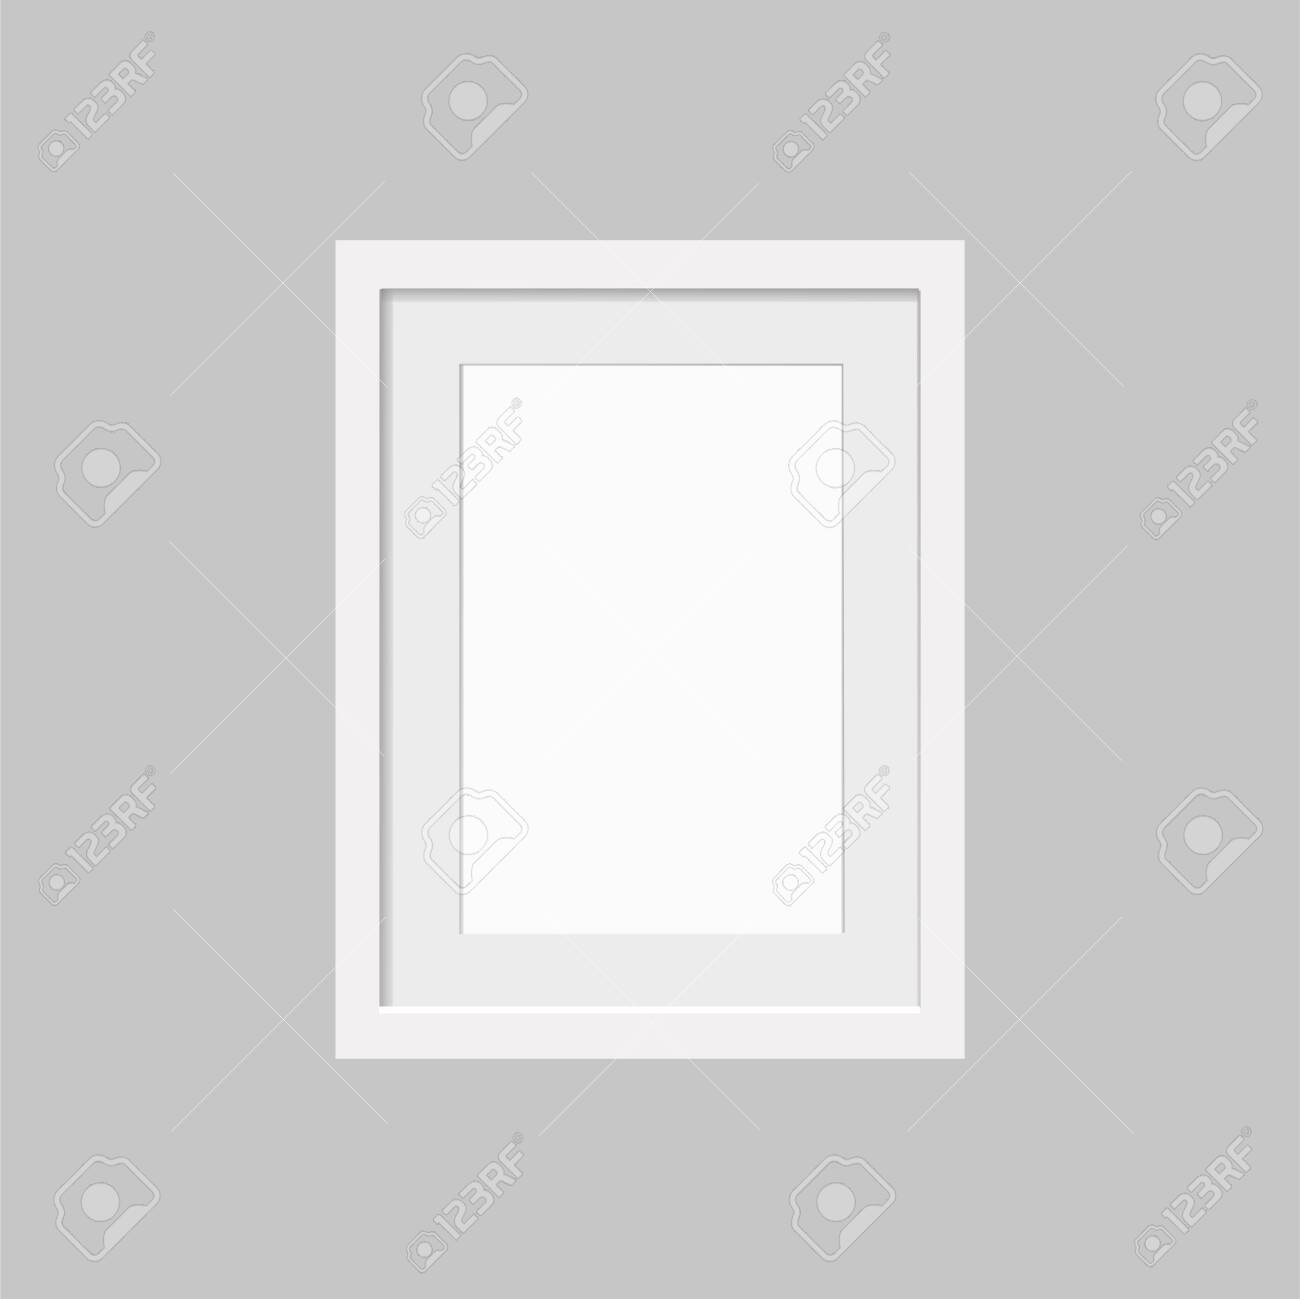 Realistic empty white frame with passepartout isolated on gray background. Border for your creative project, mock-up sample, vector design object. Vector illustration EPS 10. - 146542328